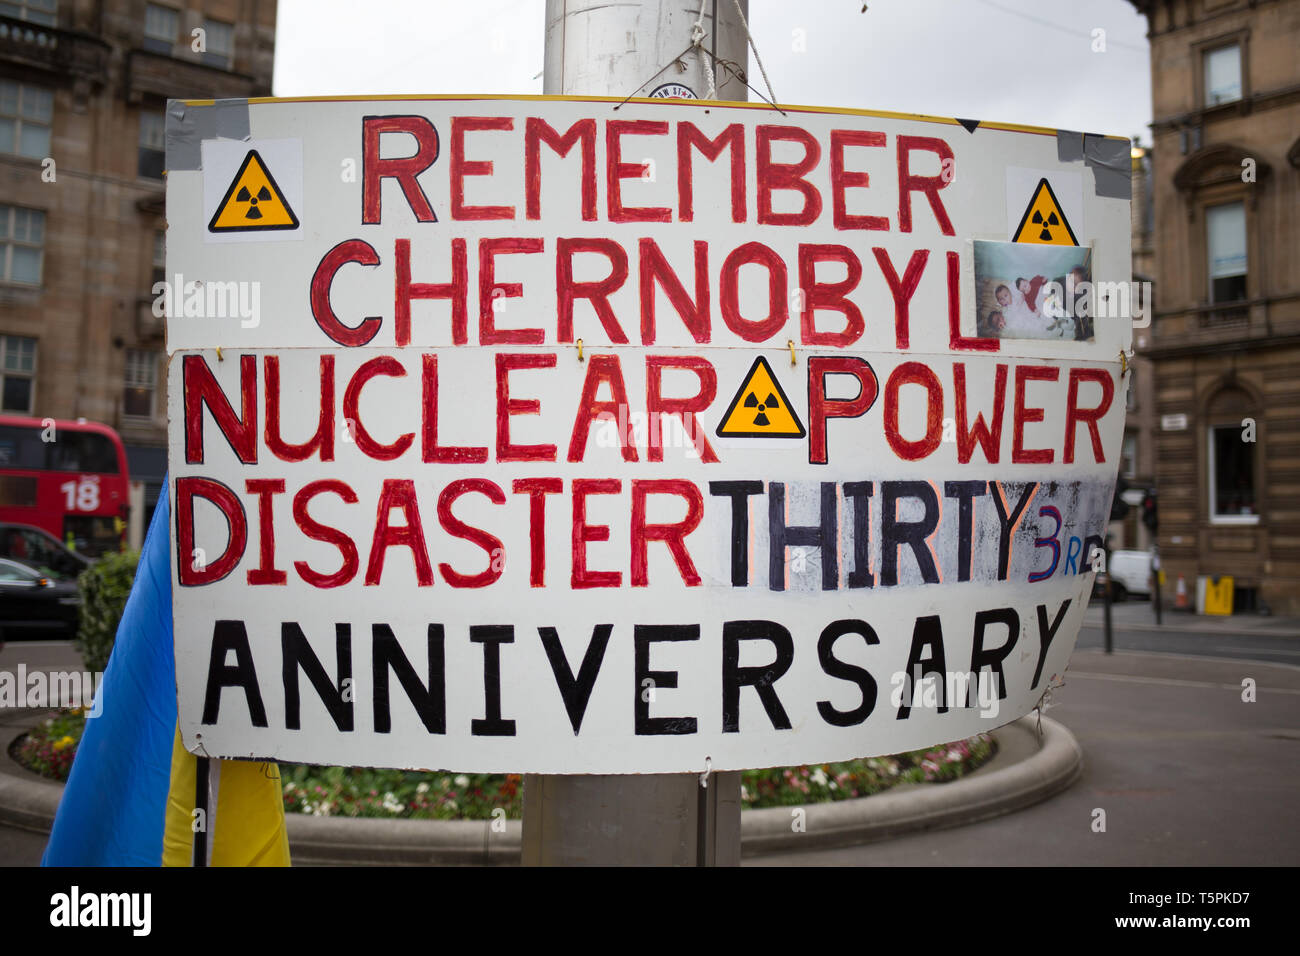 Glasgow, Scotland, 26th April 2019. 78-years old Jim Gillies stands in George Square with his placard remembering the 1986 Chernobyl nuclear disaster in the Ukraine. Today marks the 33rd anniversary of the disaster and Jim Gillies has marked the disaster day, by standing with his placard in the Square ever year since, as well as donating more than £20,000 GBP to a hospital in Ukraine, a country he has now visited approximately 20 times. Credit: jeremy sutton-hibbert/Alamy Live News Stock Photo